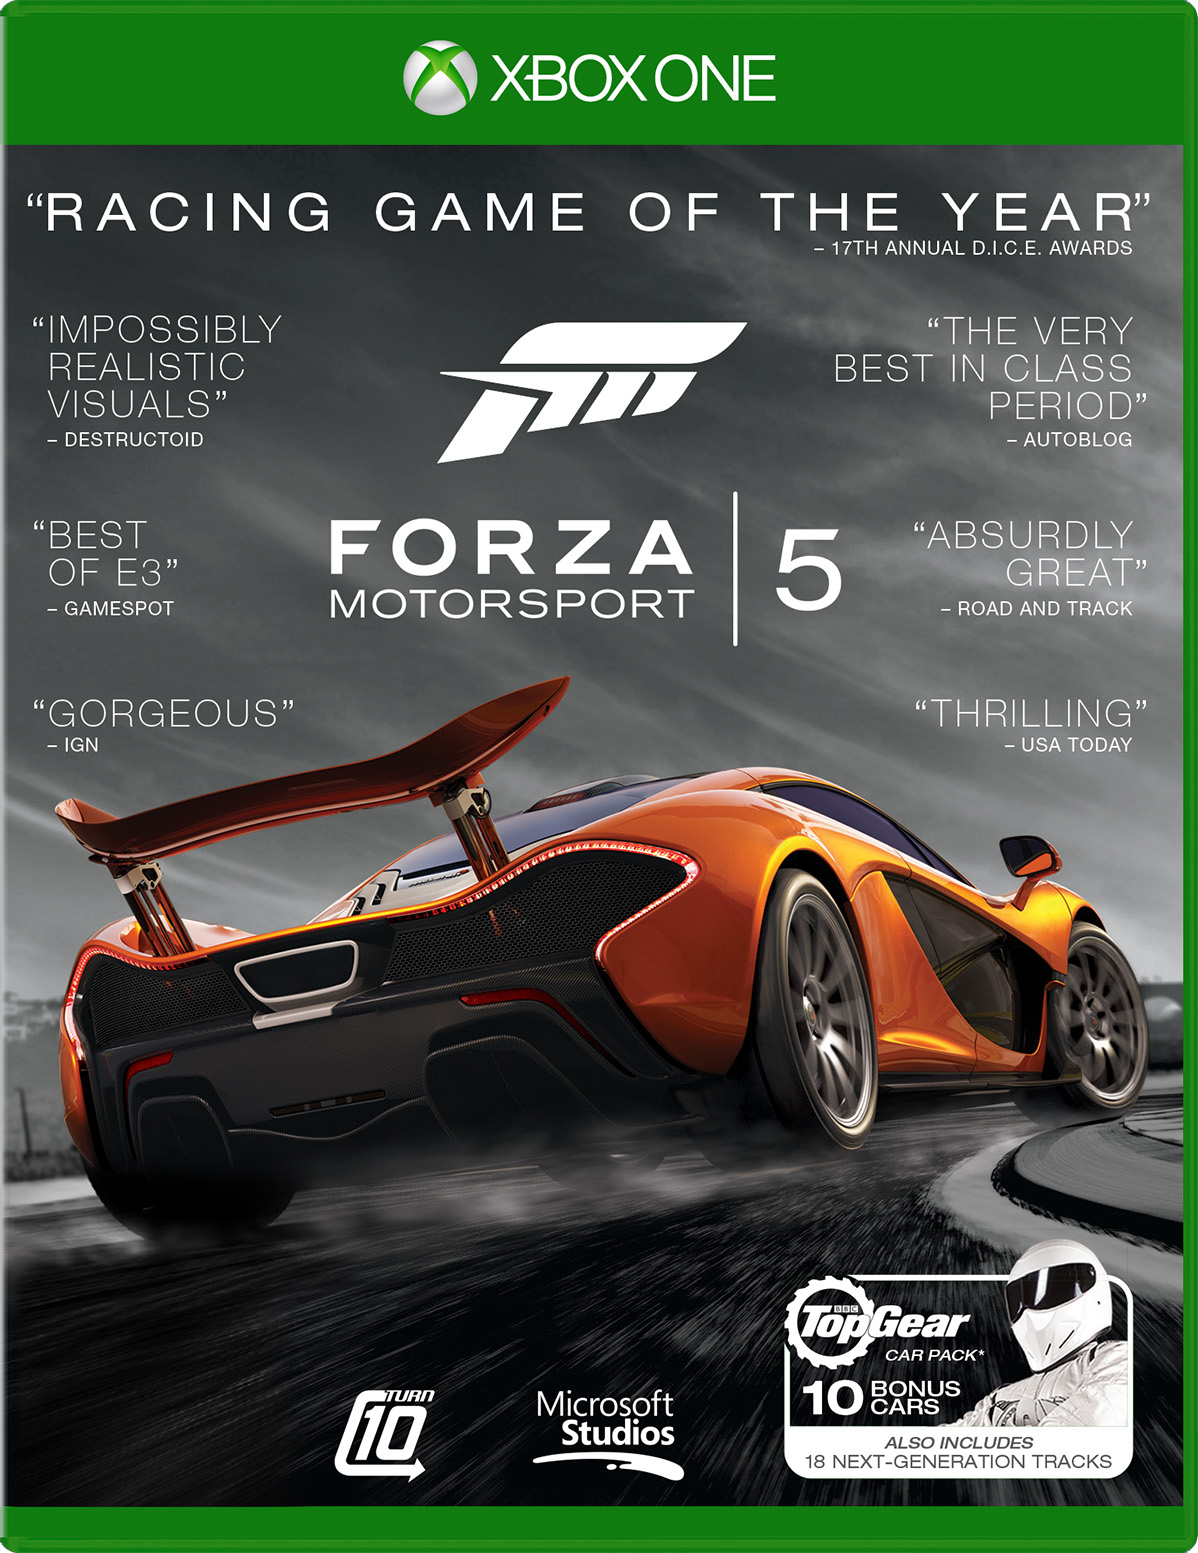 Forza 5 Motorsport Racing Game of the Year Edition for Xbox One